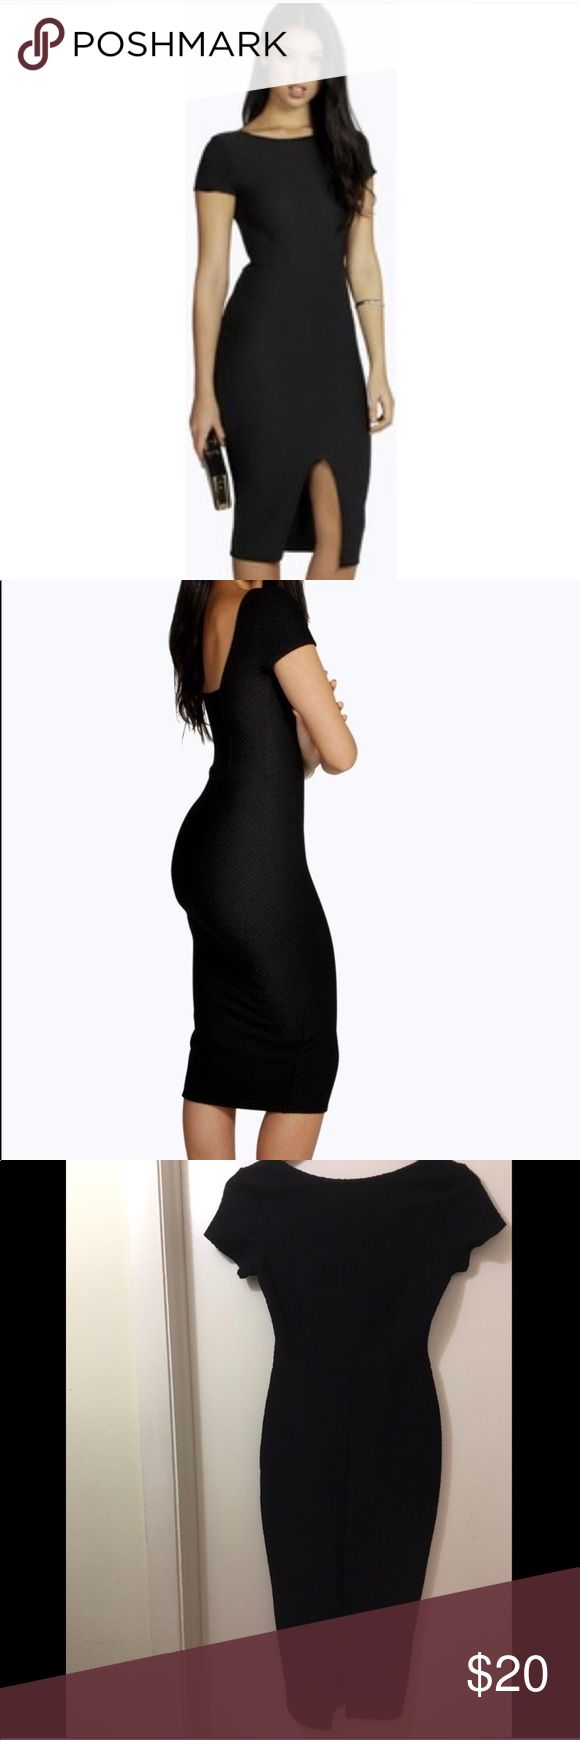 Boohoo black fitted dress This is a really cute black fitted boohoo dress. Anna textured formal slit midi. Prefect for any special occasion! Boohoo Dresses Midi